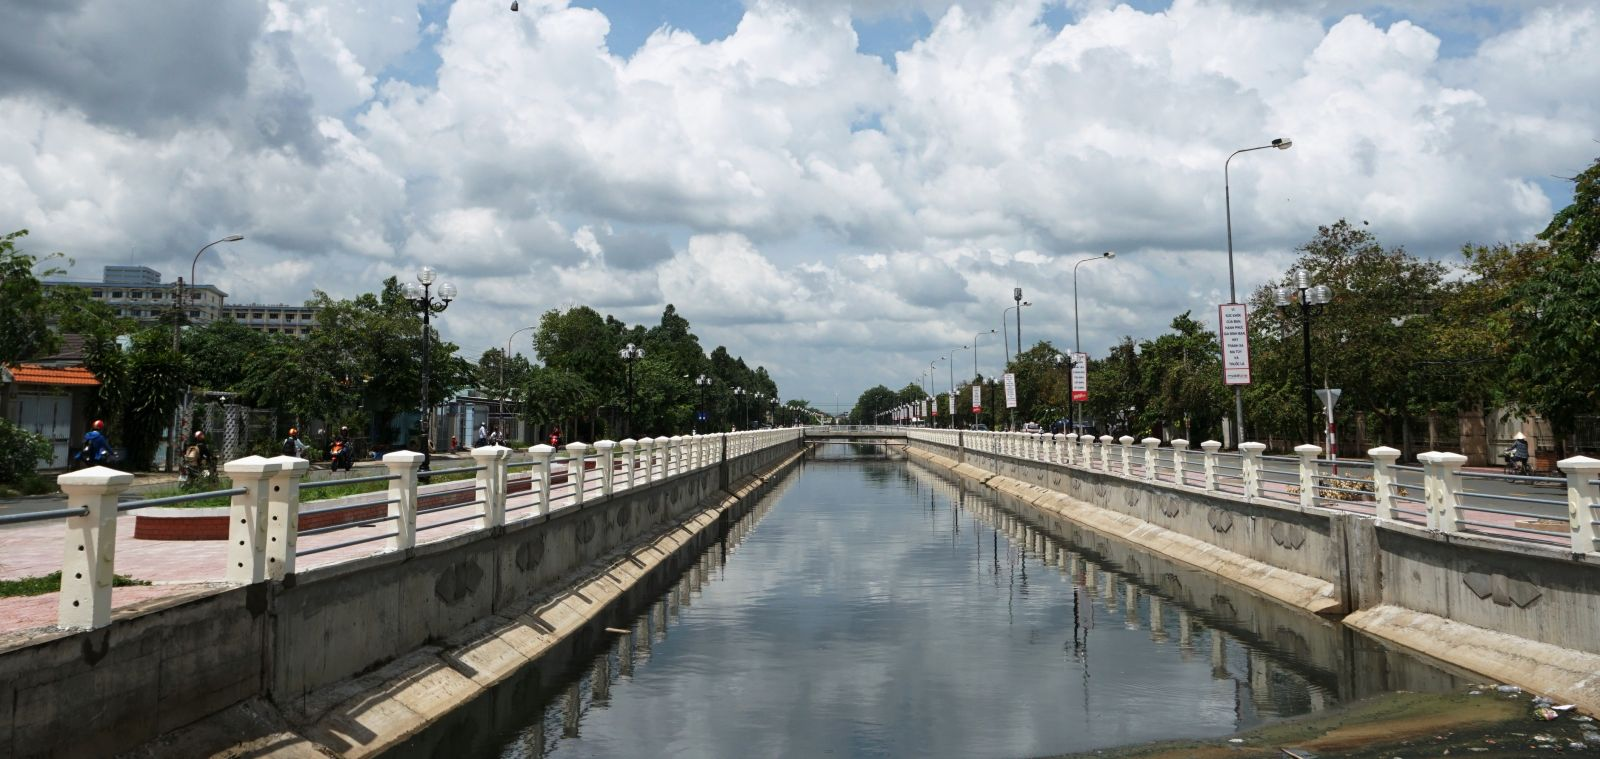 The city focuses on mobilizing all resources for constructing and developing Tan An city, including the construction of the city's key works (Photo: Revolving canal embankment to be completed)